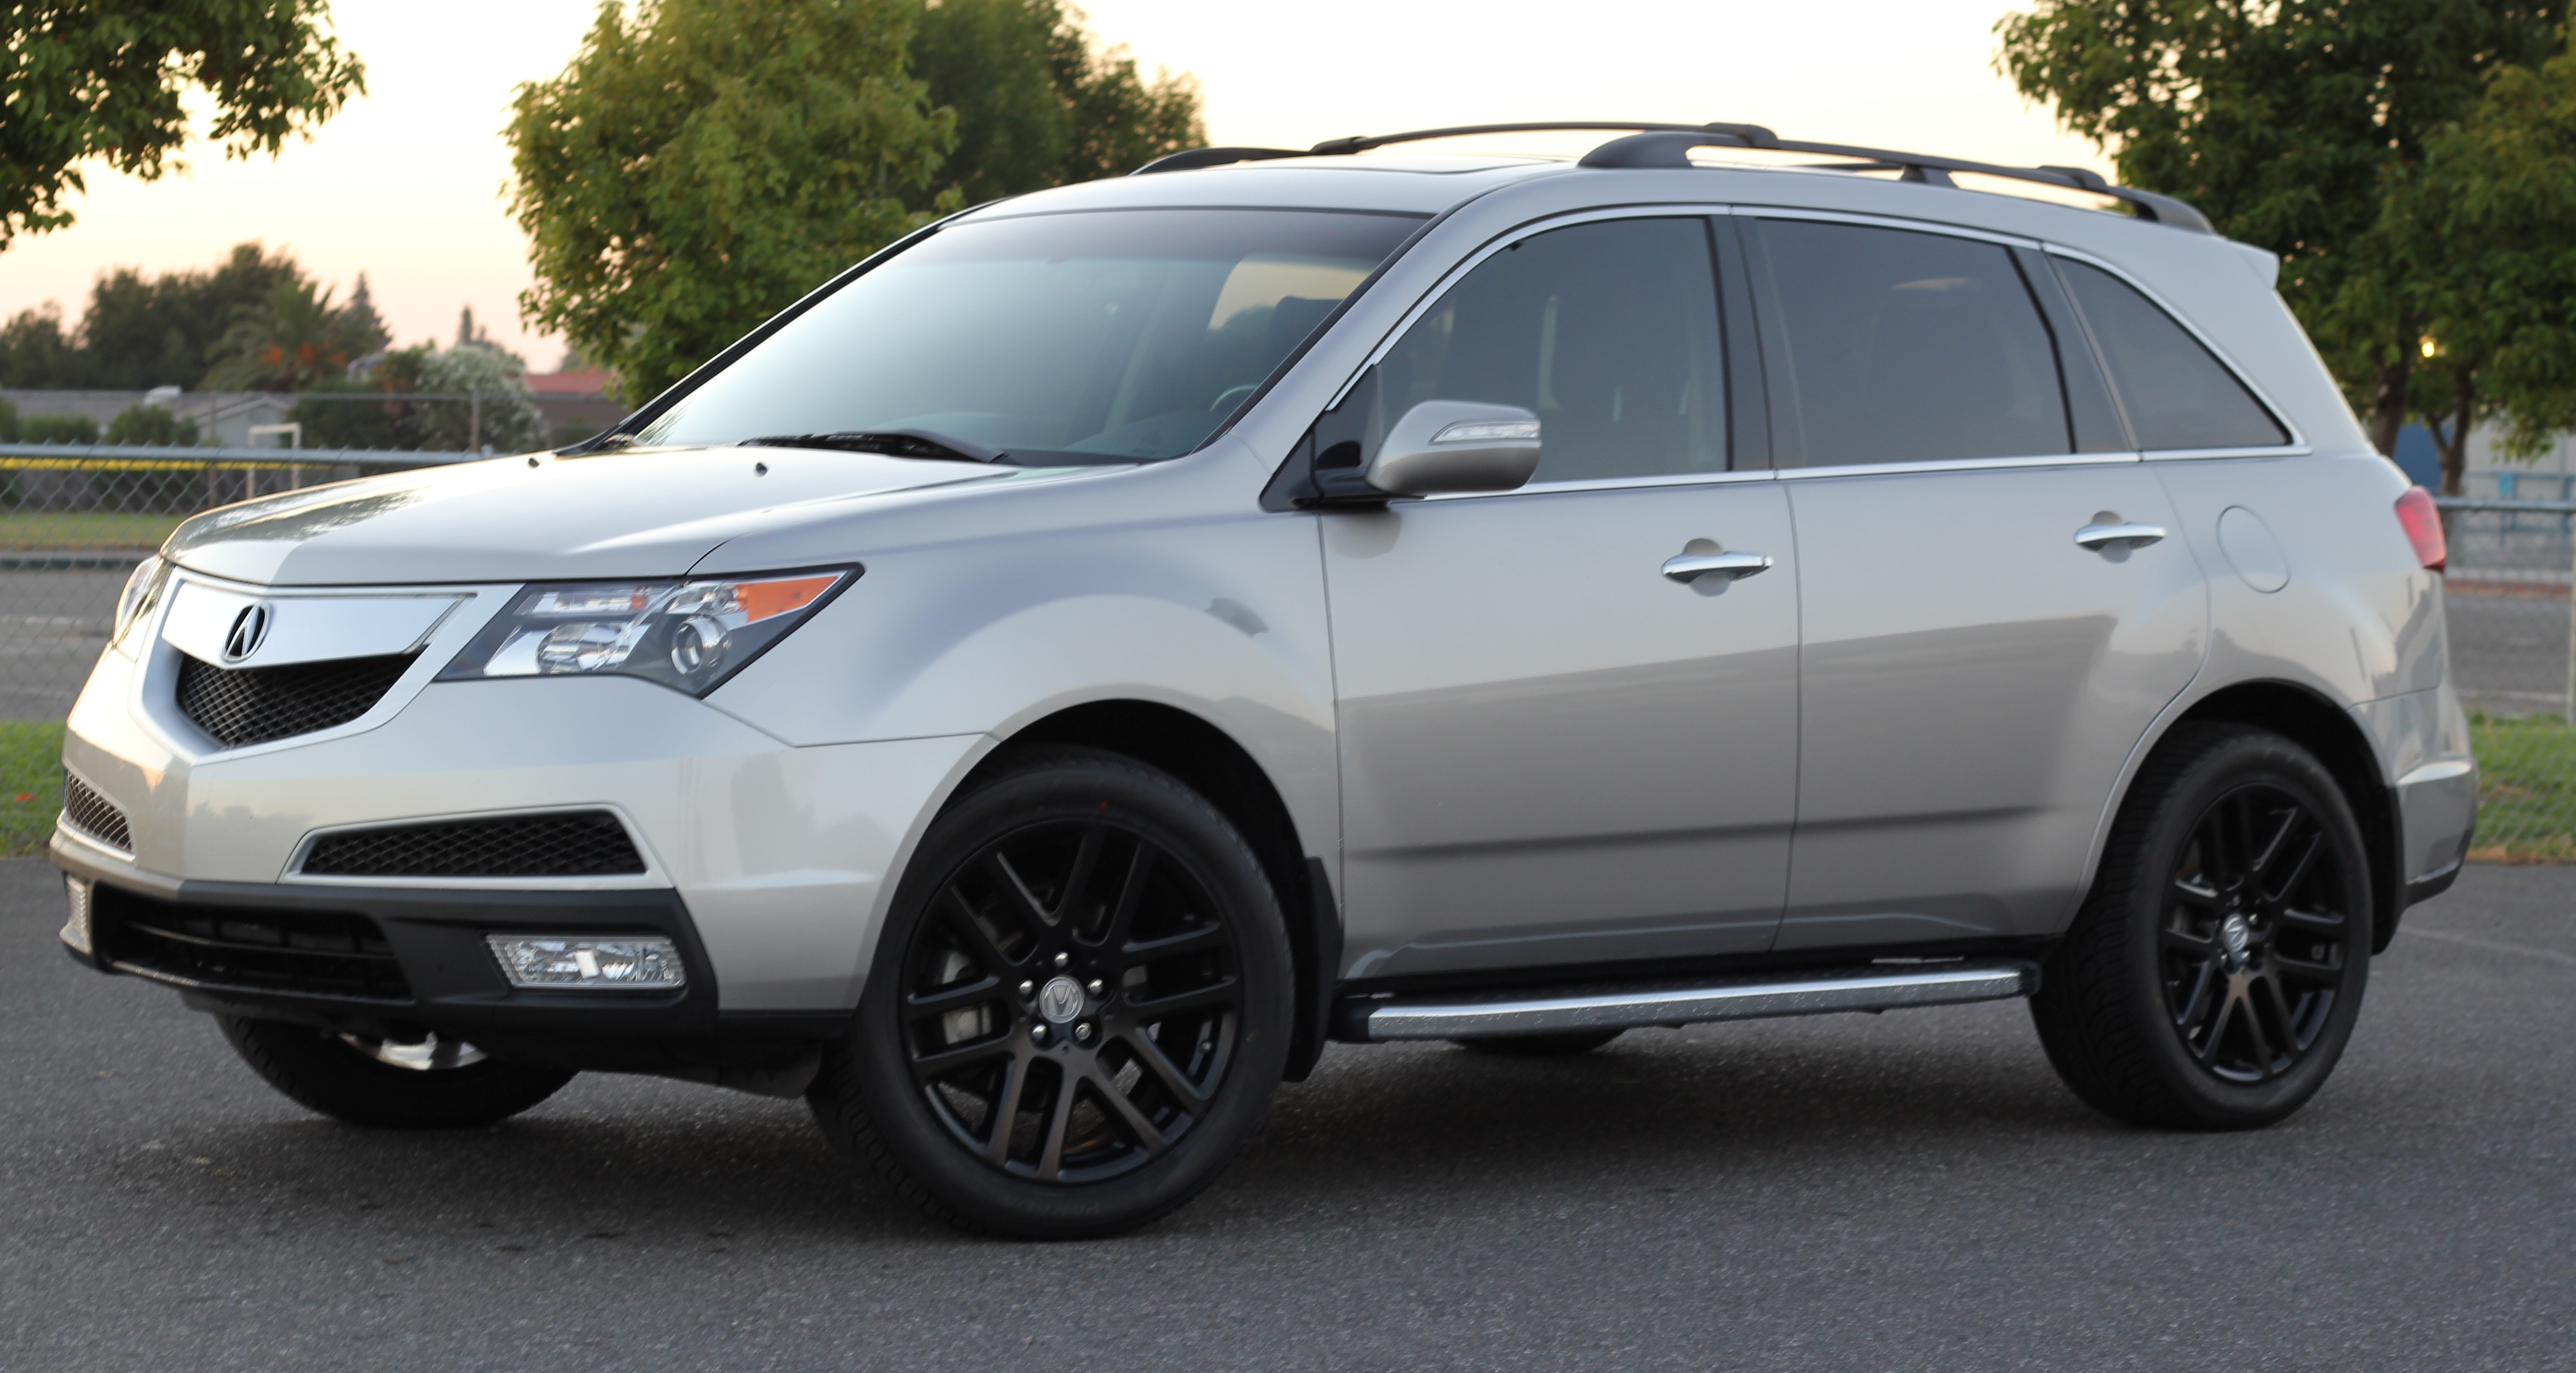 New Shoes For Christmas ZDX RIMS Page Acura MDX Forum - Acura mdxers